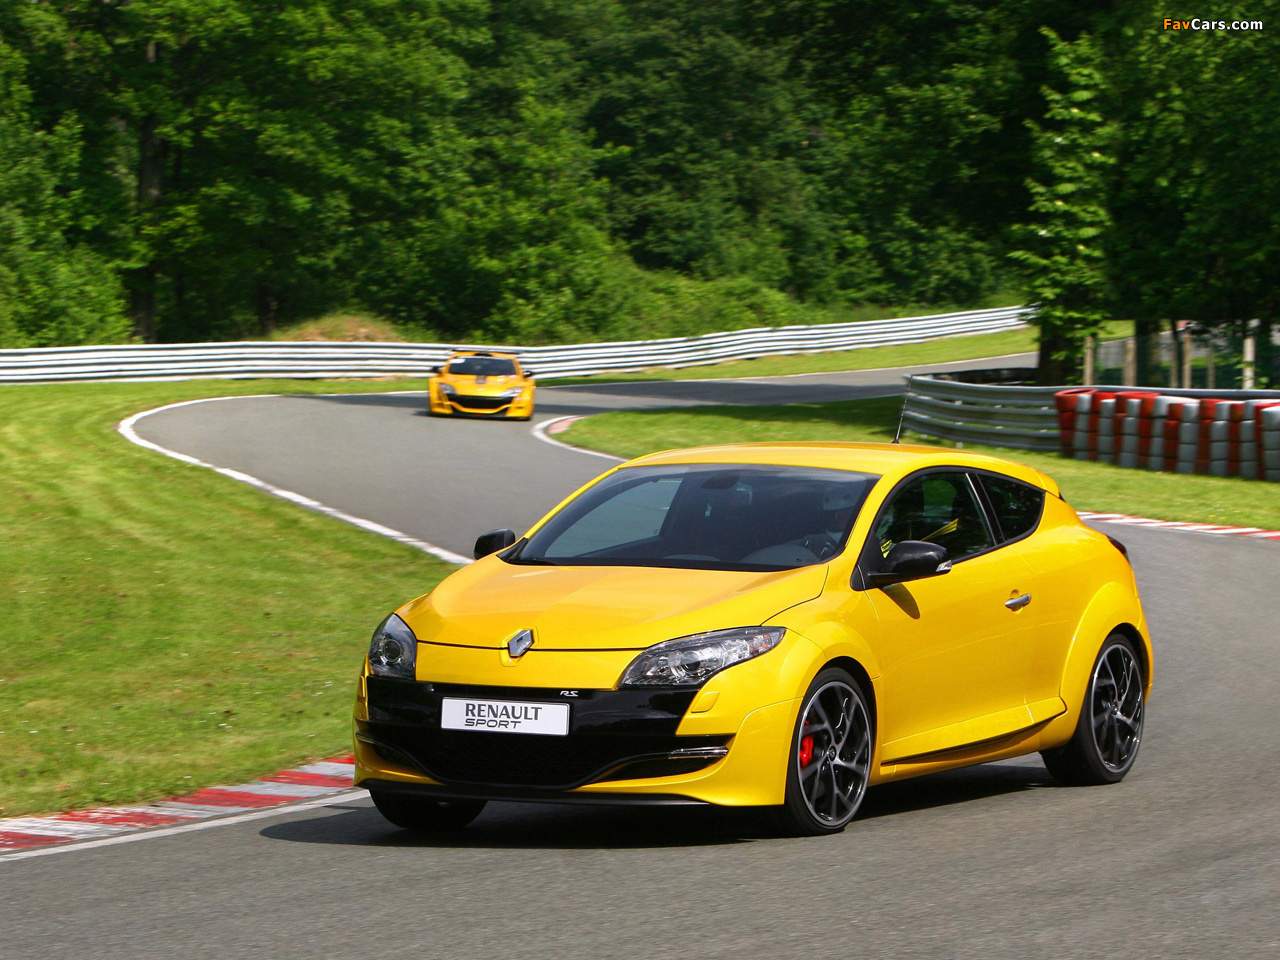 Pictures of Renault Megane (1280 x 960)